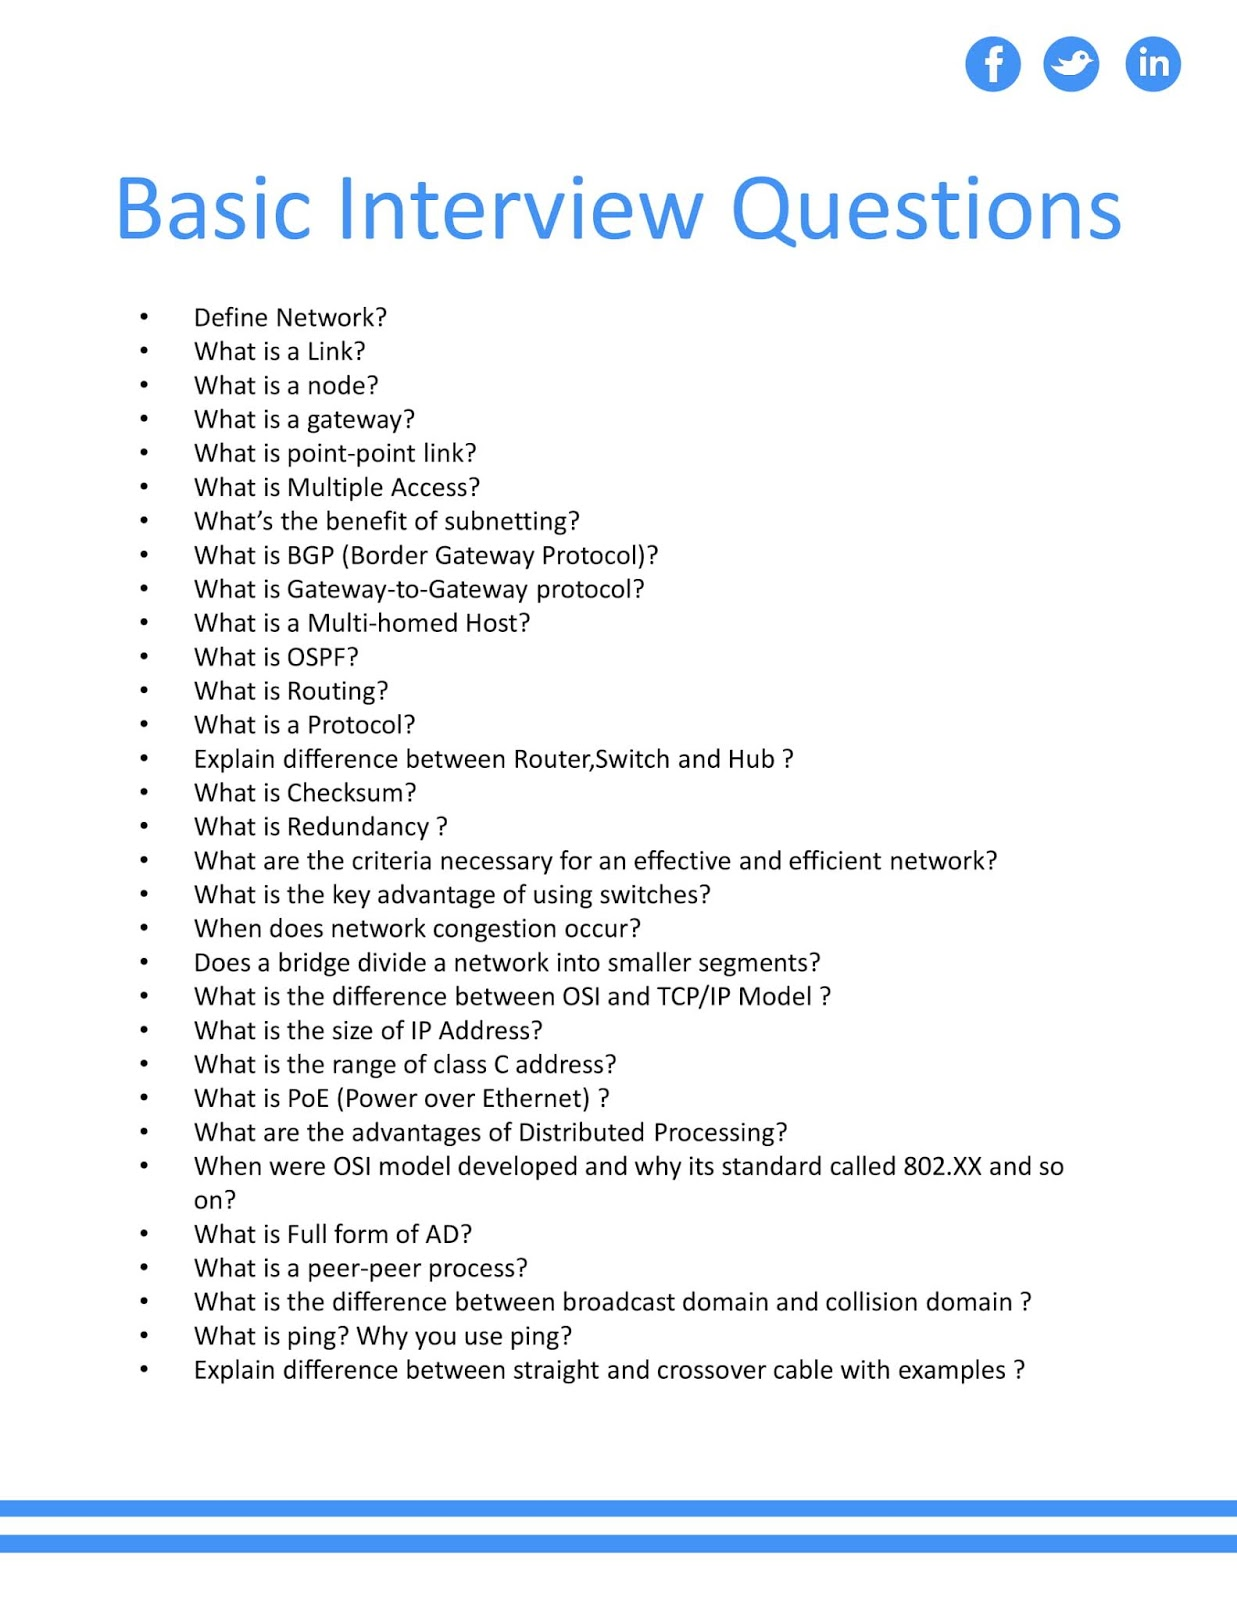 Basic Networking Interview Questions